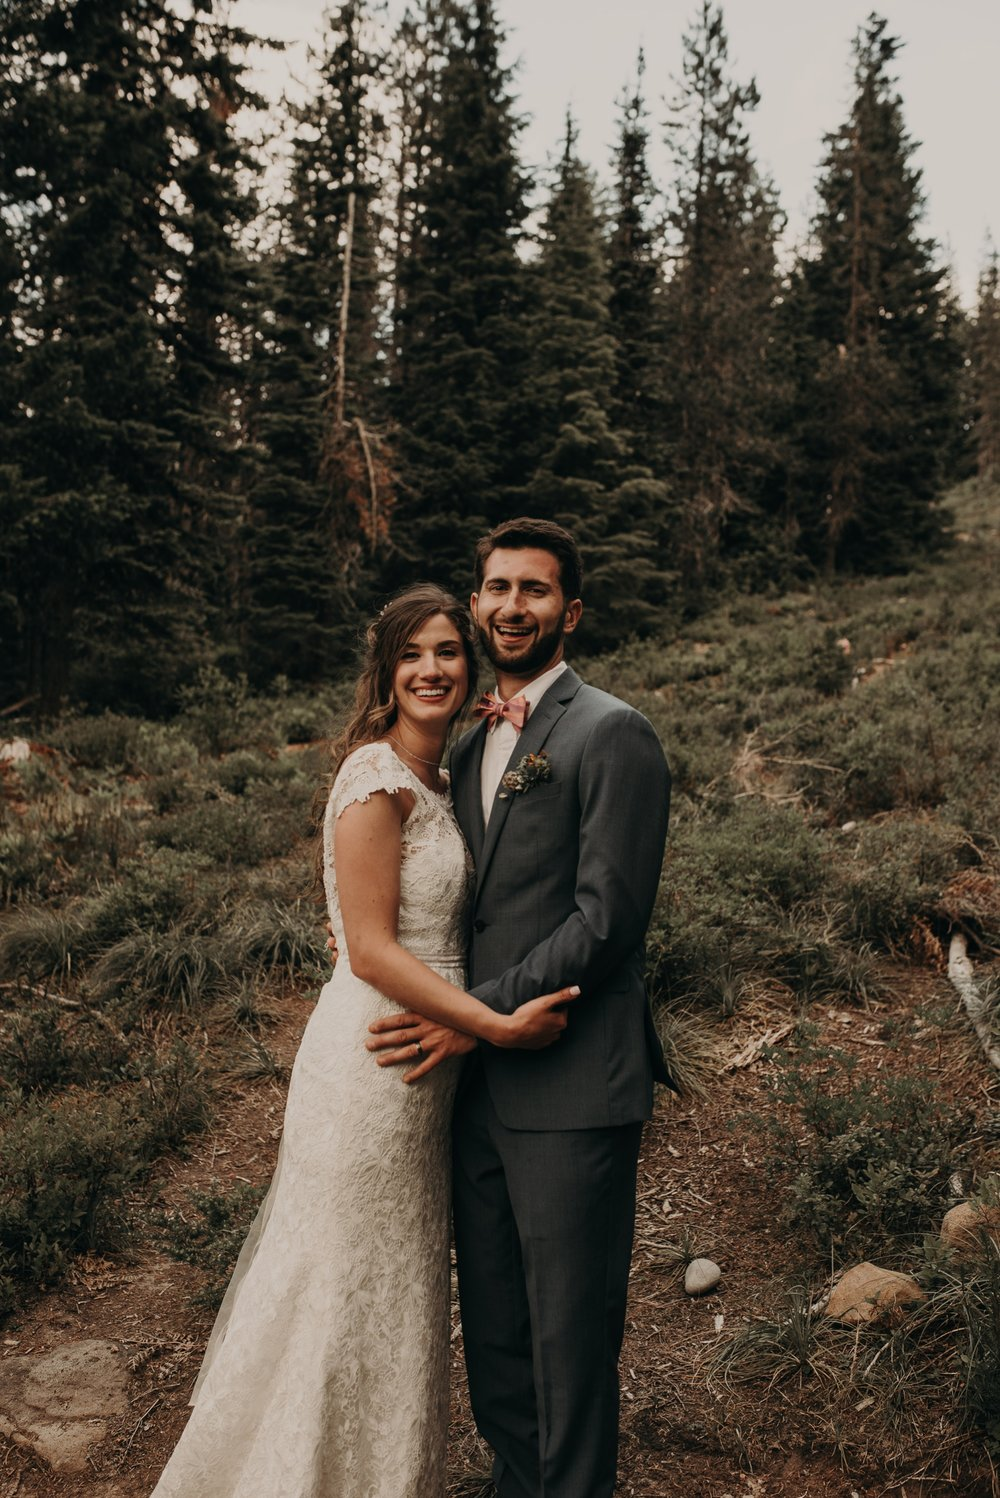 Olivia_Kyle_Mt_Hood_Wedding_0297.jpg